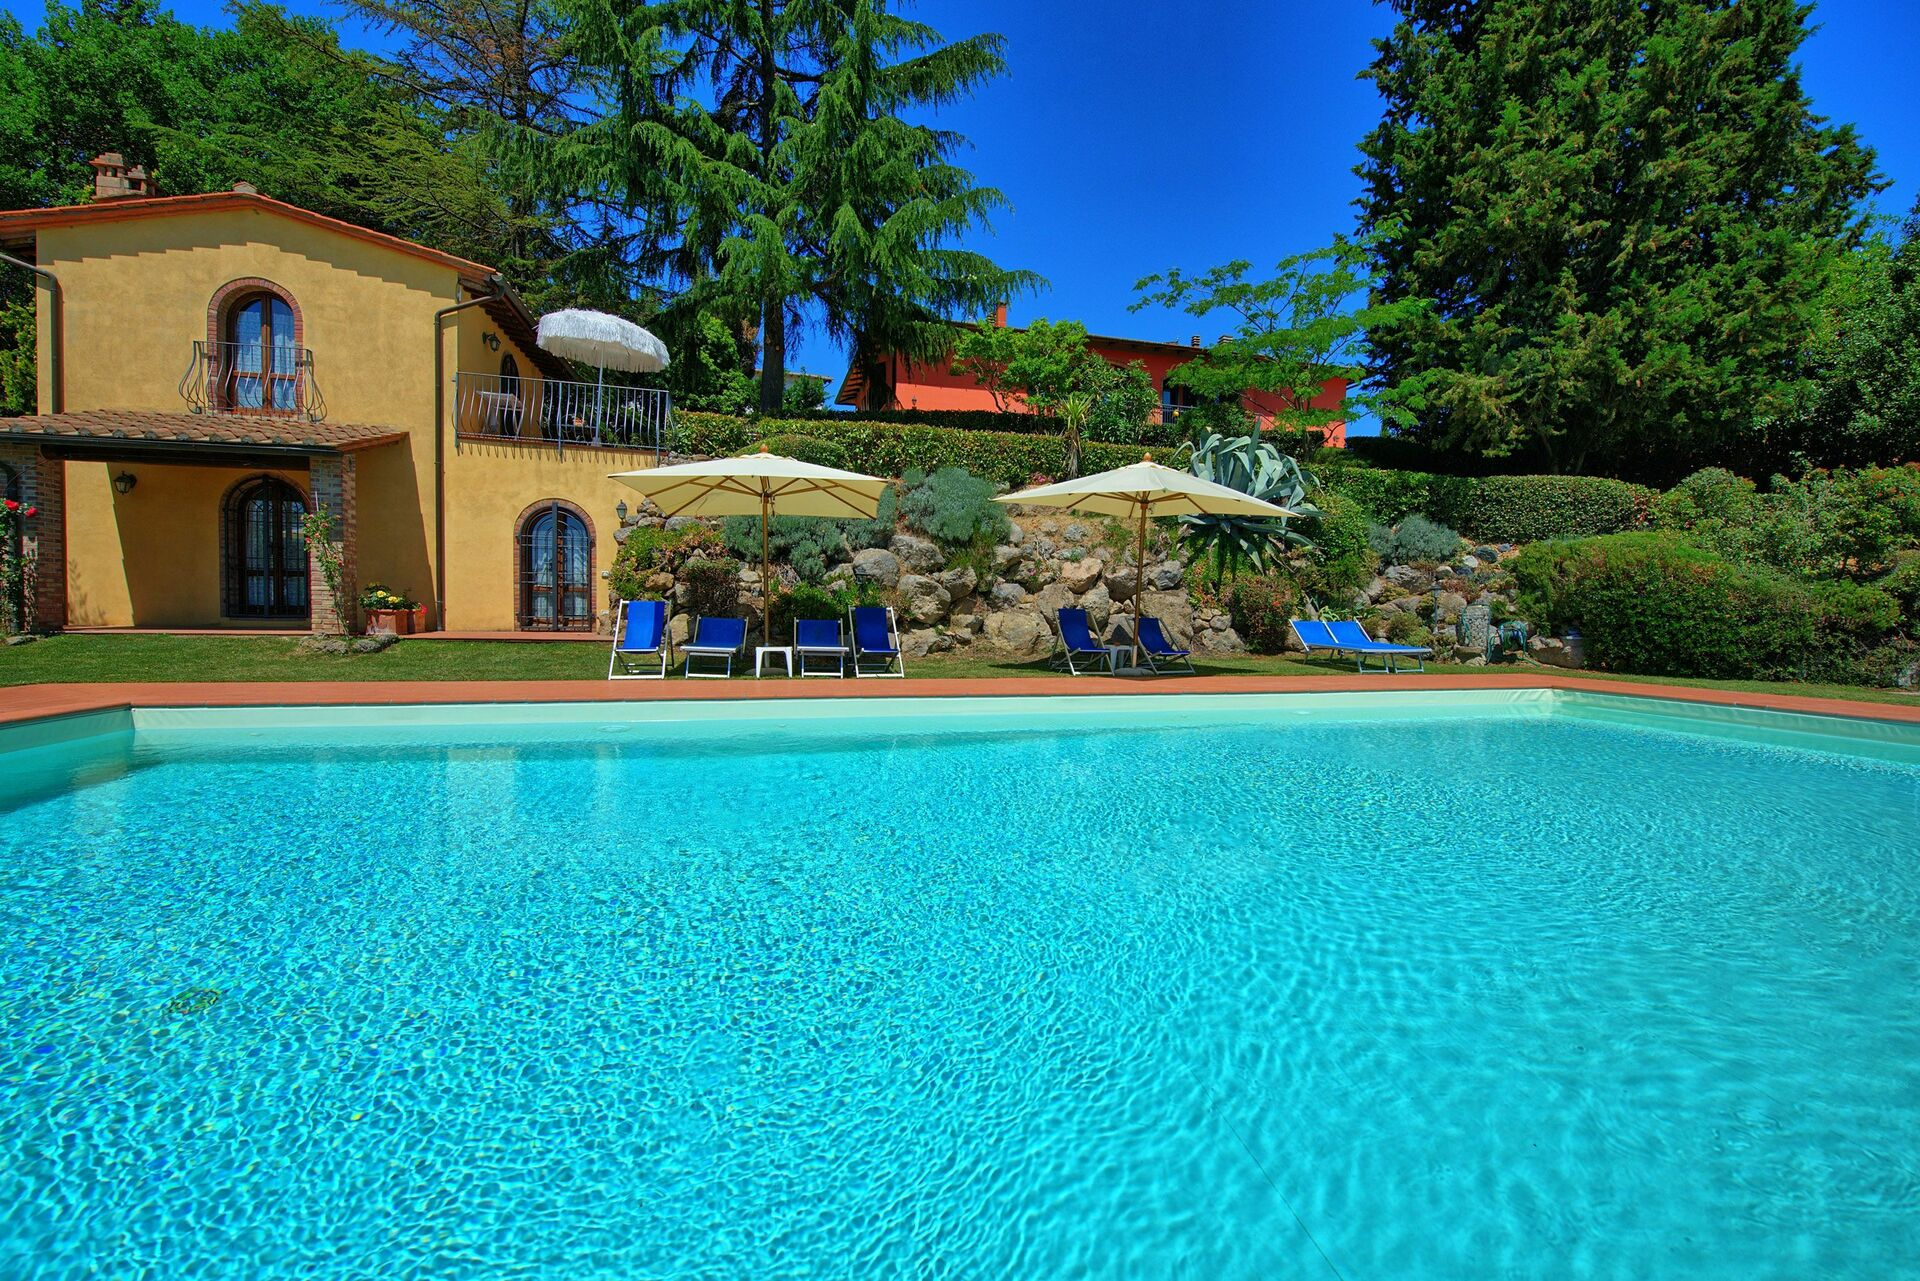 Holiday apartment for rent in Chianti  Casa Rossa